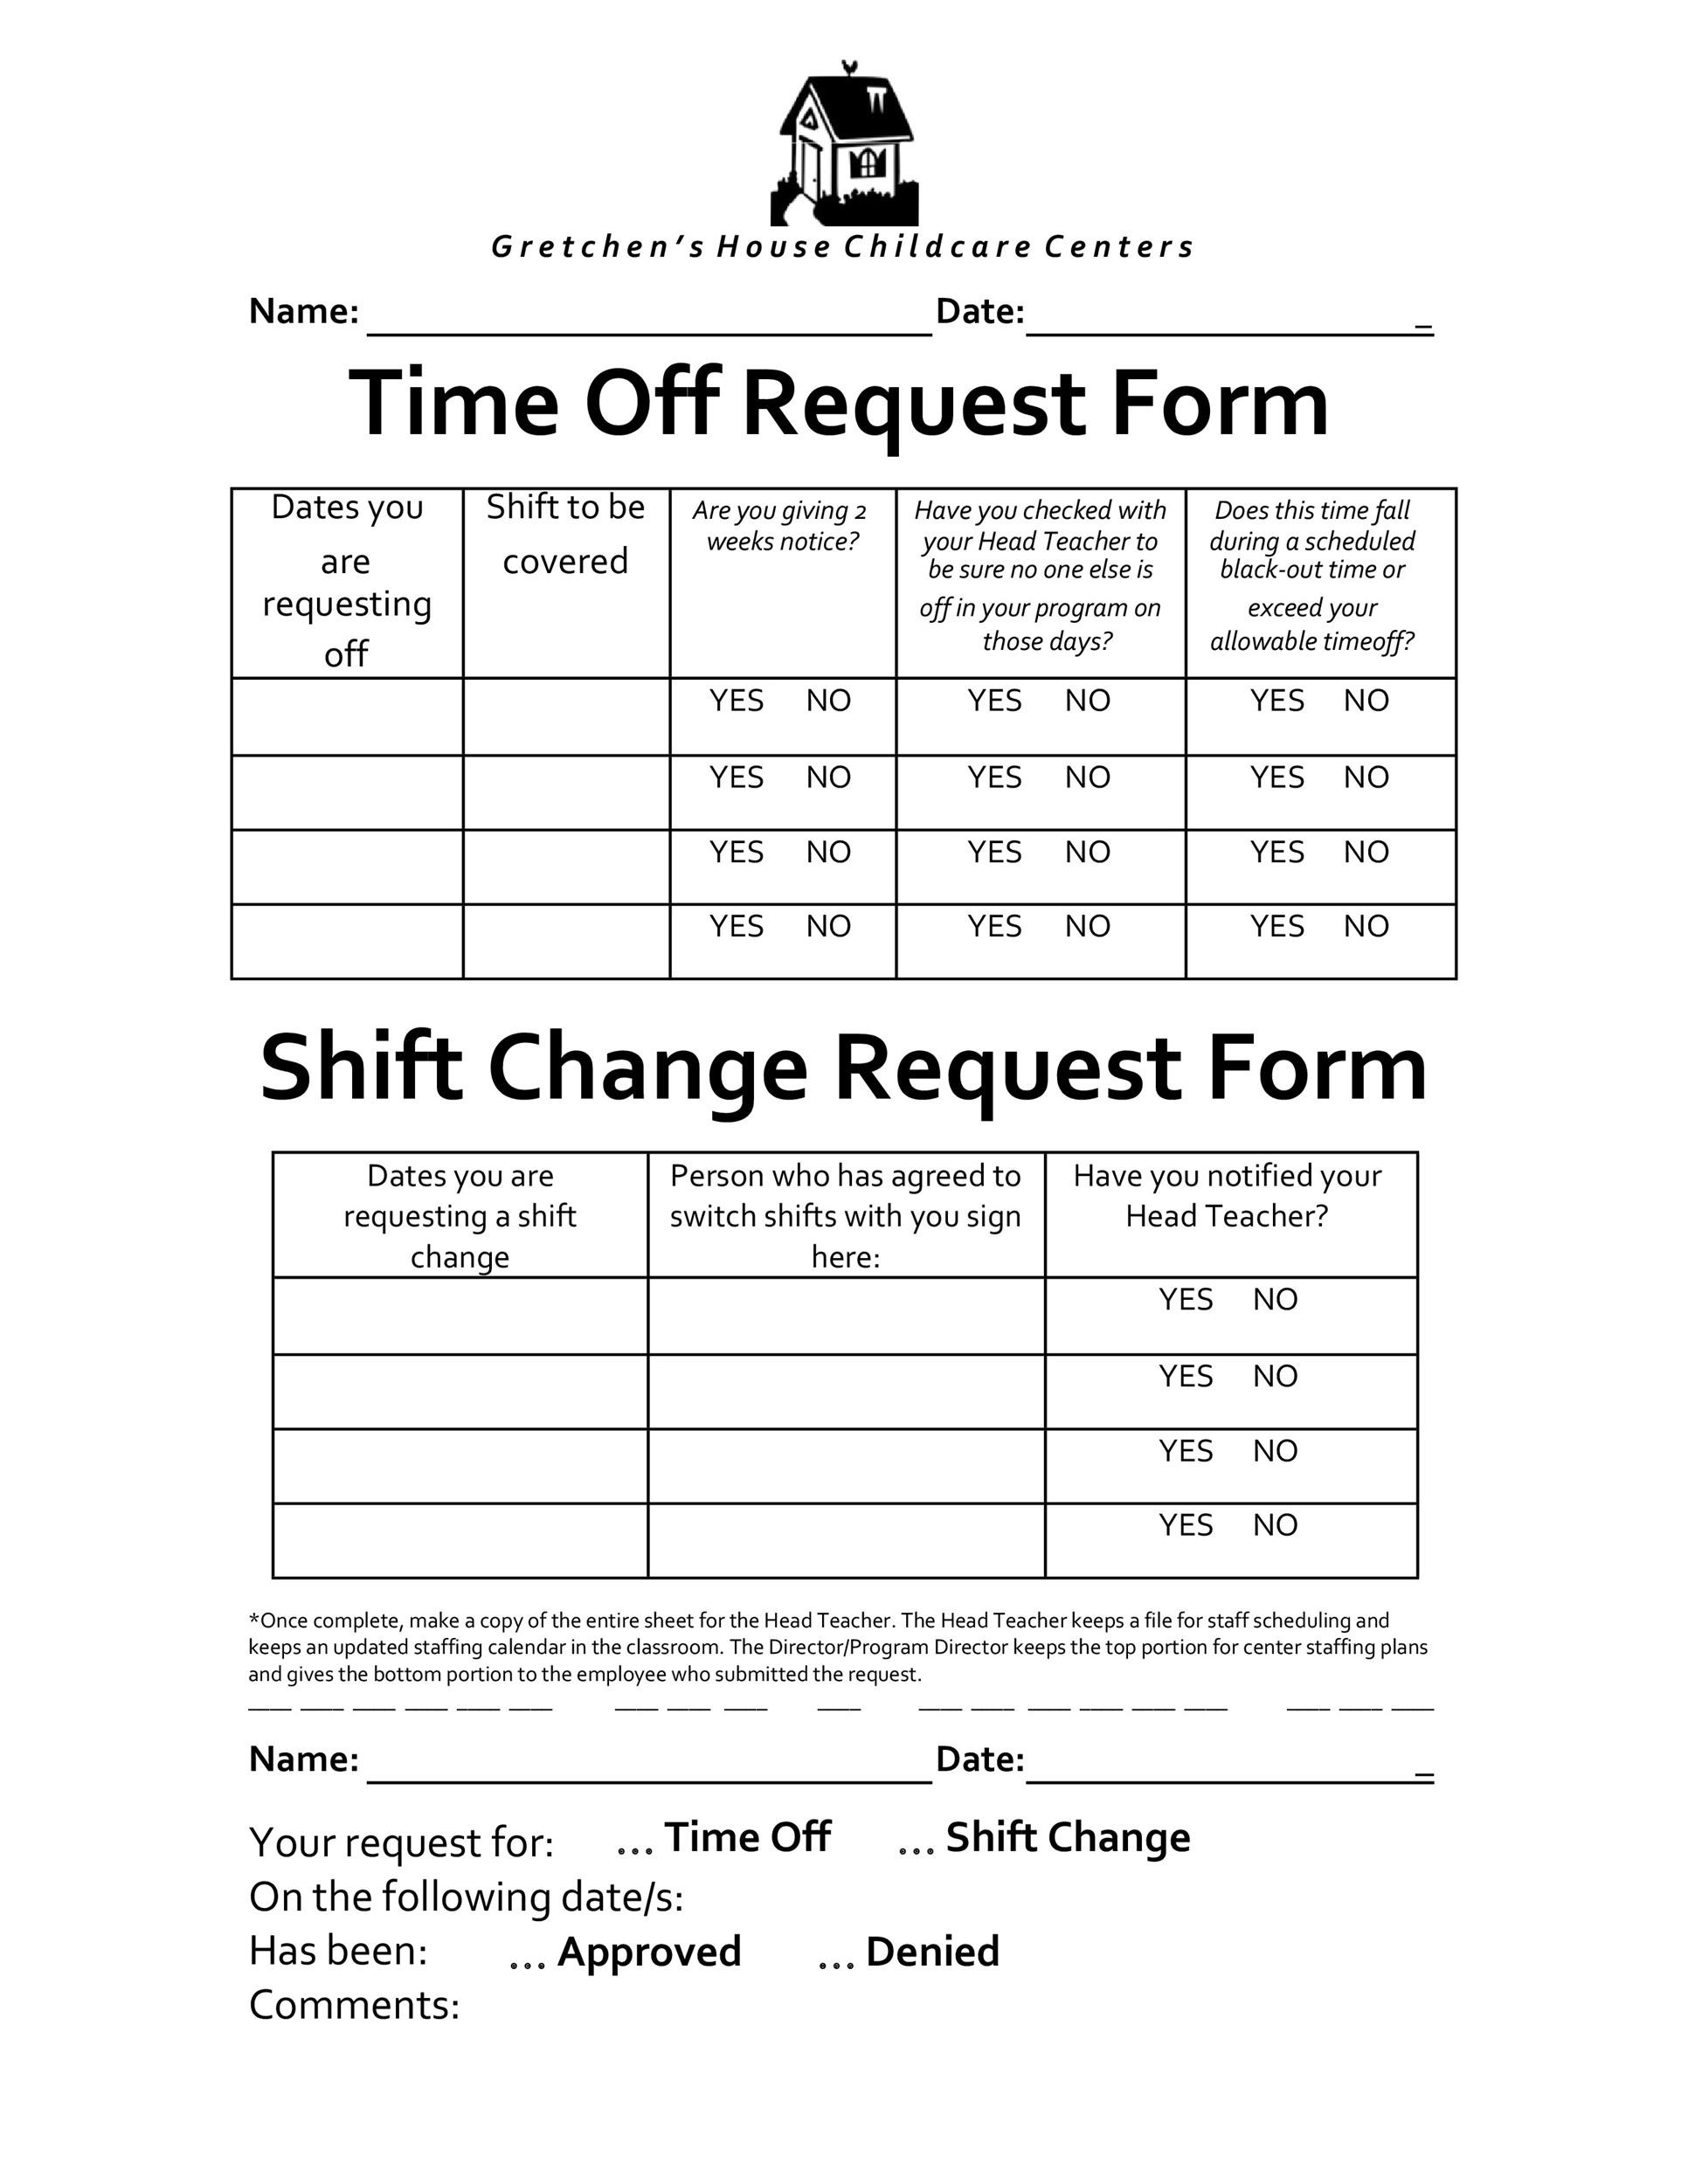 Time Off Request Forms Sample Time Off Request Form  Download